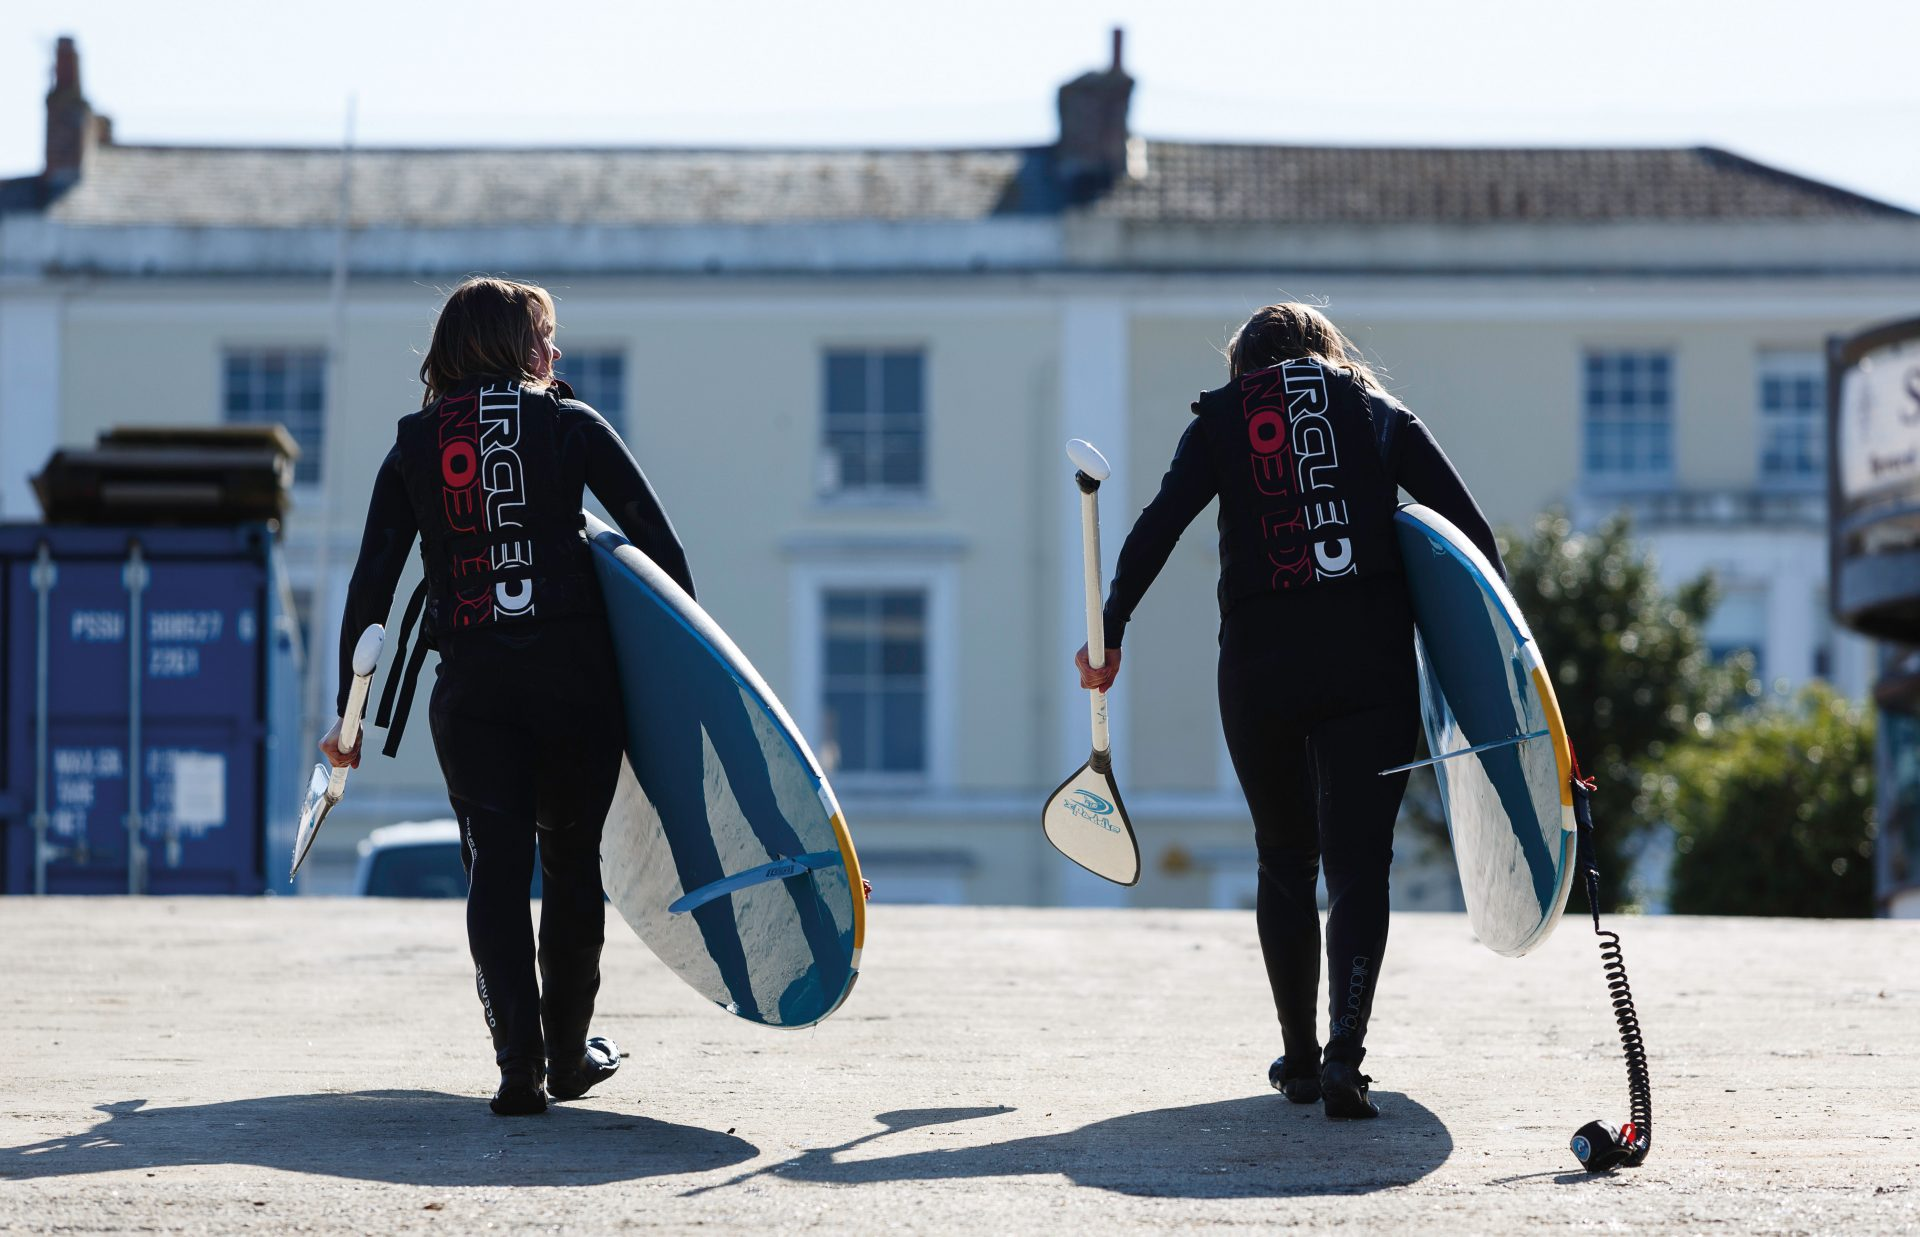 Two students walk carrying paddle boarding boards